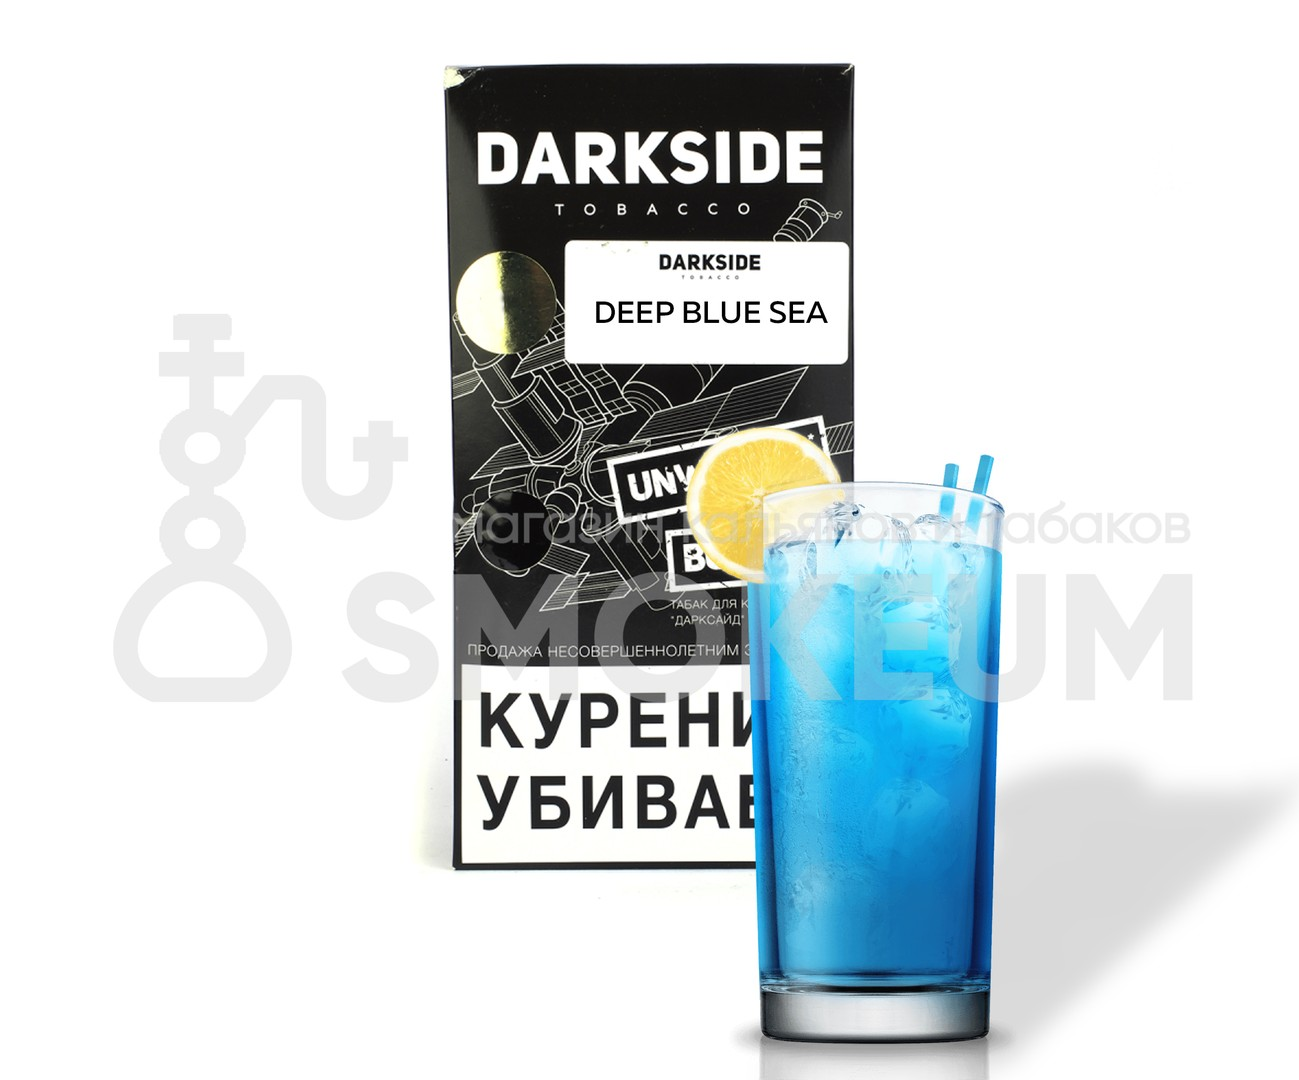 Табак Darkside (Soft) - Deep Blue Sea (Байкал) 250 гр